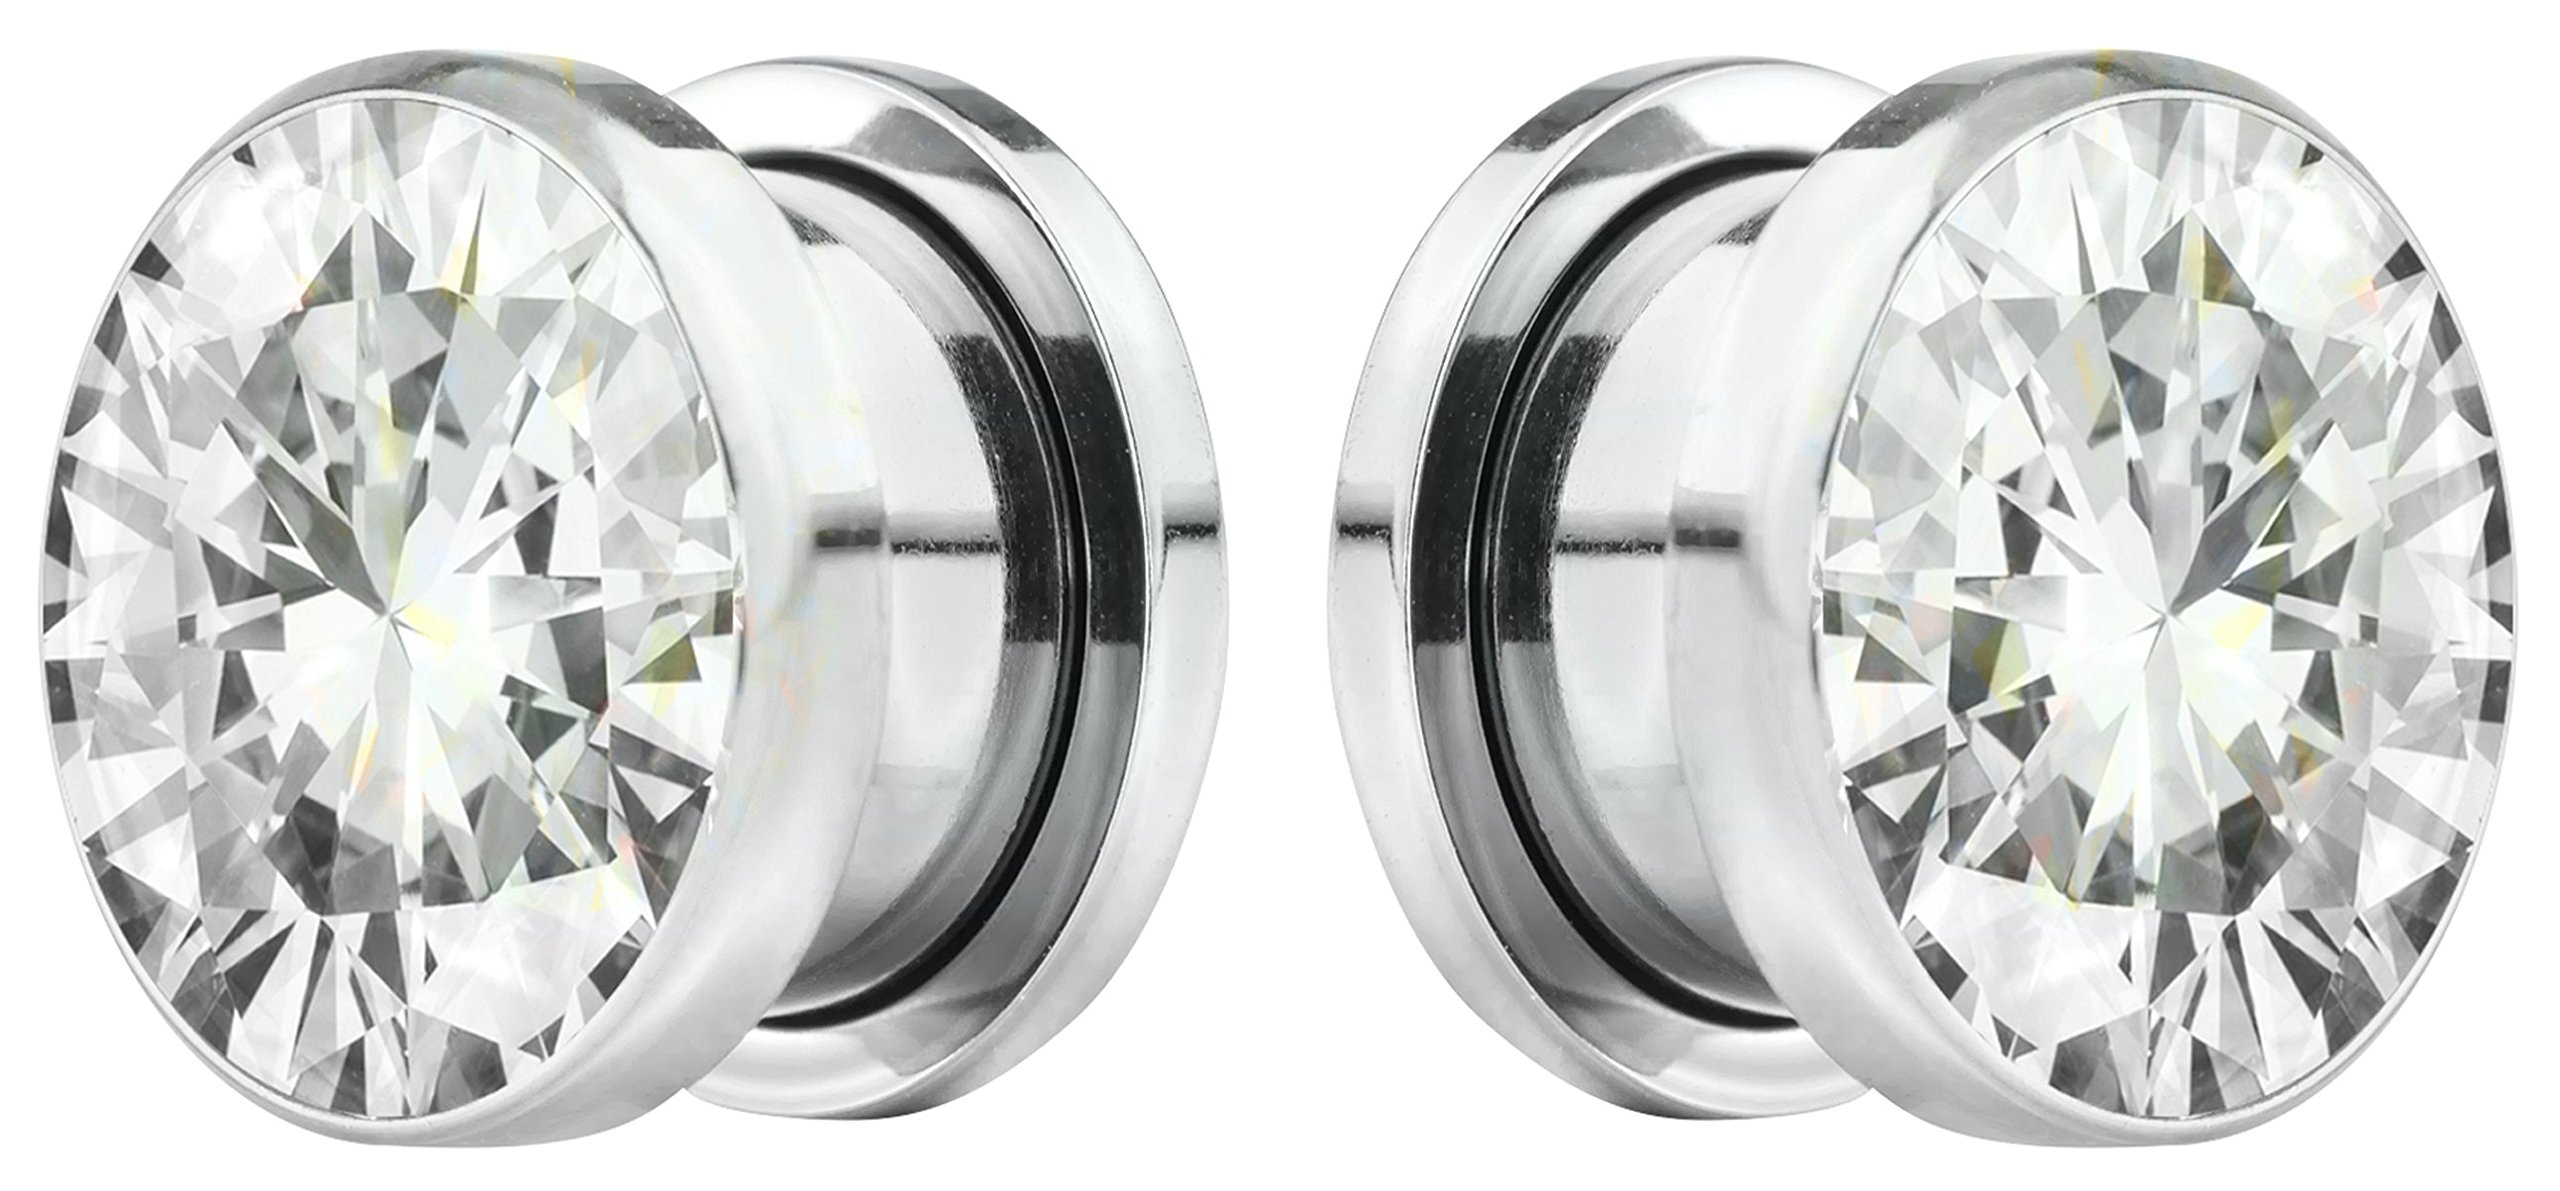 Forbidden Body Jewelry 22mm (7/8 Inch) Surgical Steel Screw Fit CZ Center Tunnel Plug Earrings (2pcs)